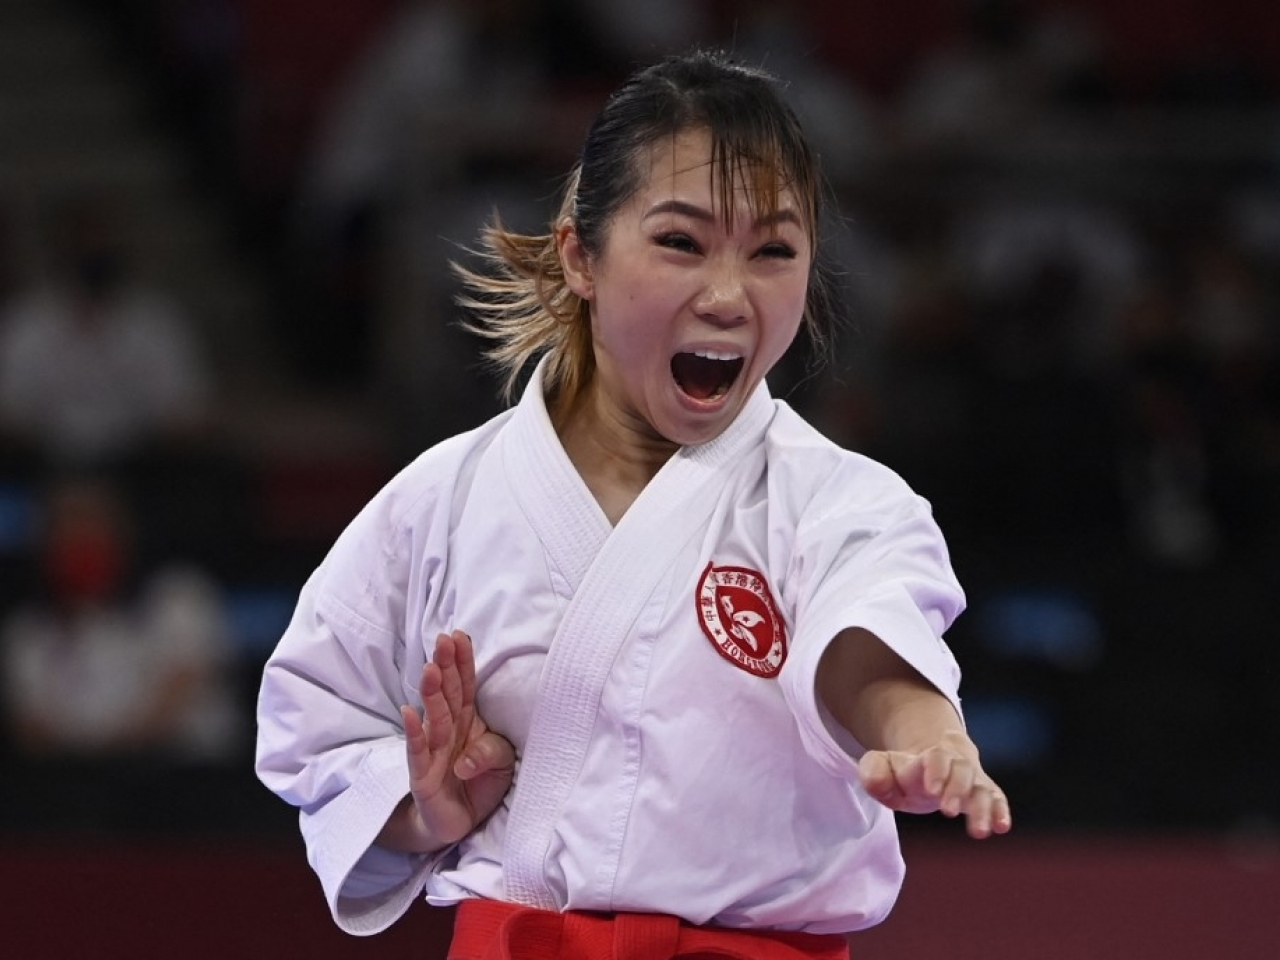 Grace Lau performs in the women's kata ranking round of the karate competition in Tokyo. Photo: AFP